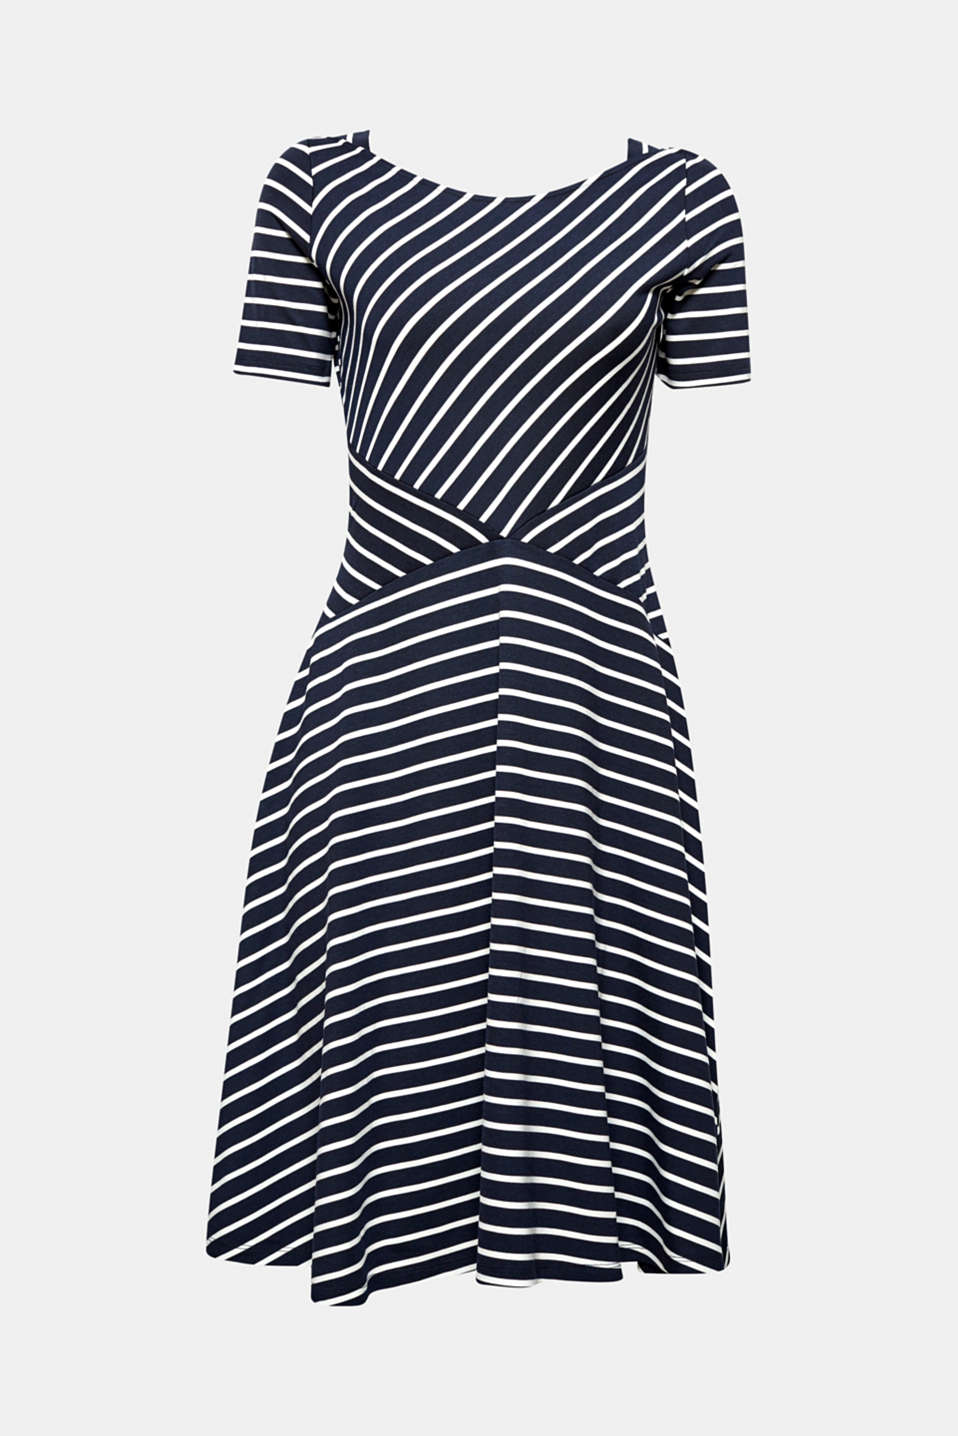 Put on and look great: super easy with this two tone jersey dress with a swirling skirt!